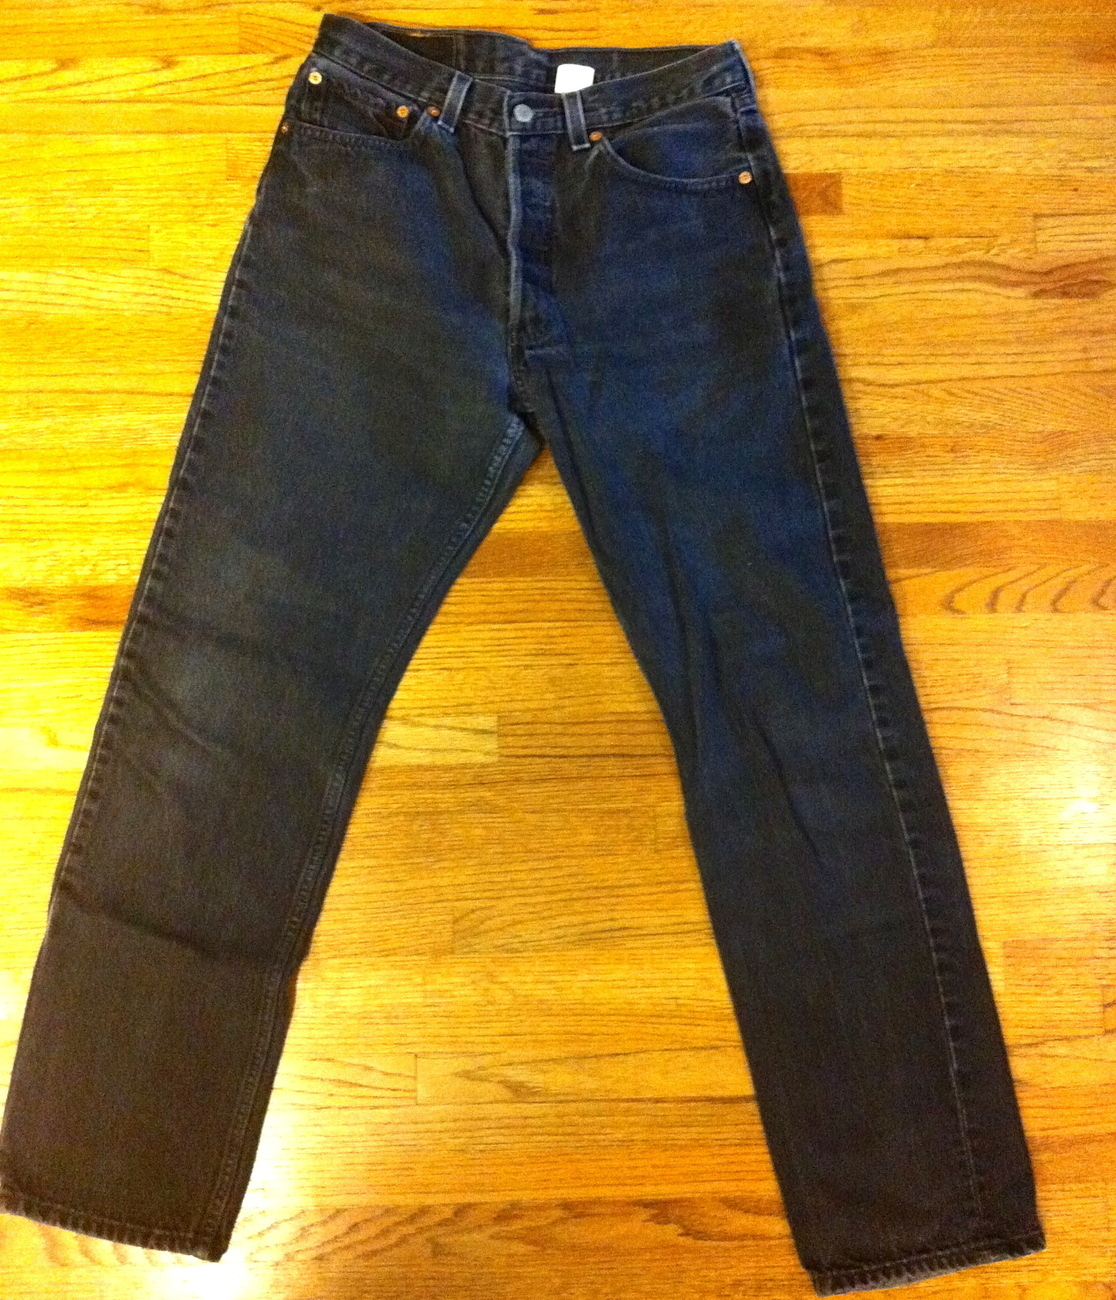 Primary image for Mens Gently Used Faded Black 501 Levis SZ 30 x 31